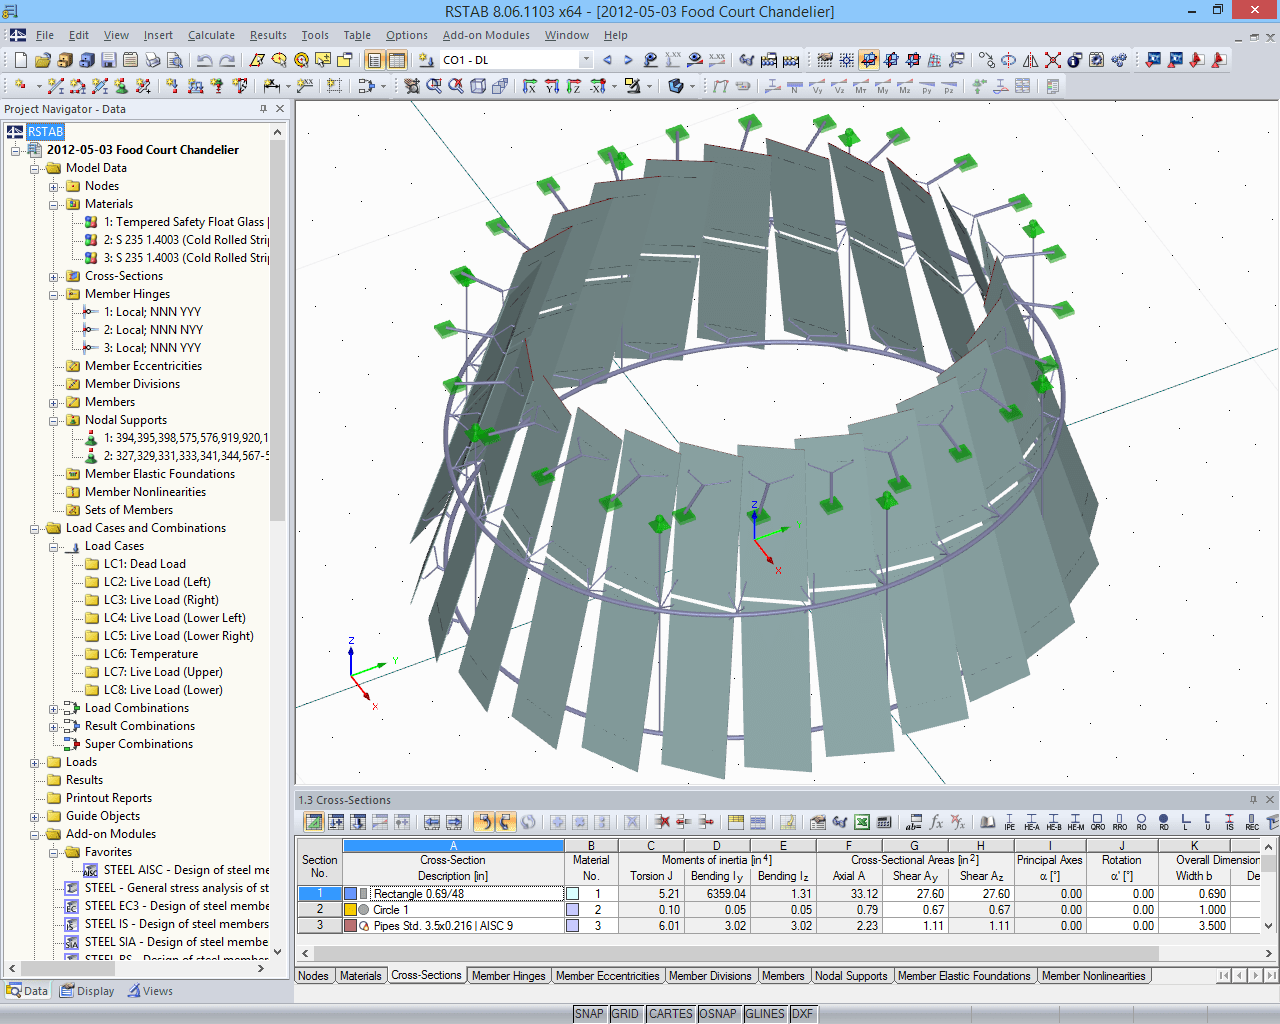 3D model of the supporting structure of the glass chandelier in RSTAB (© www.stutzkiengineering.com)